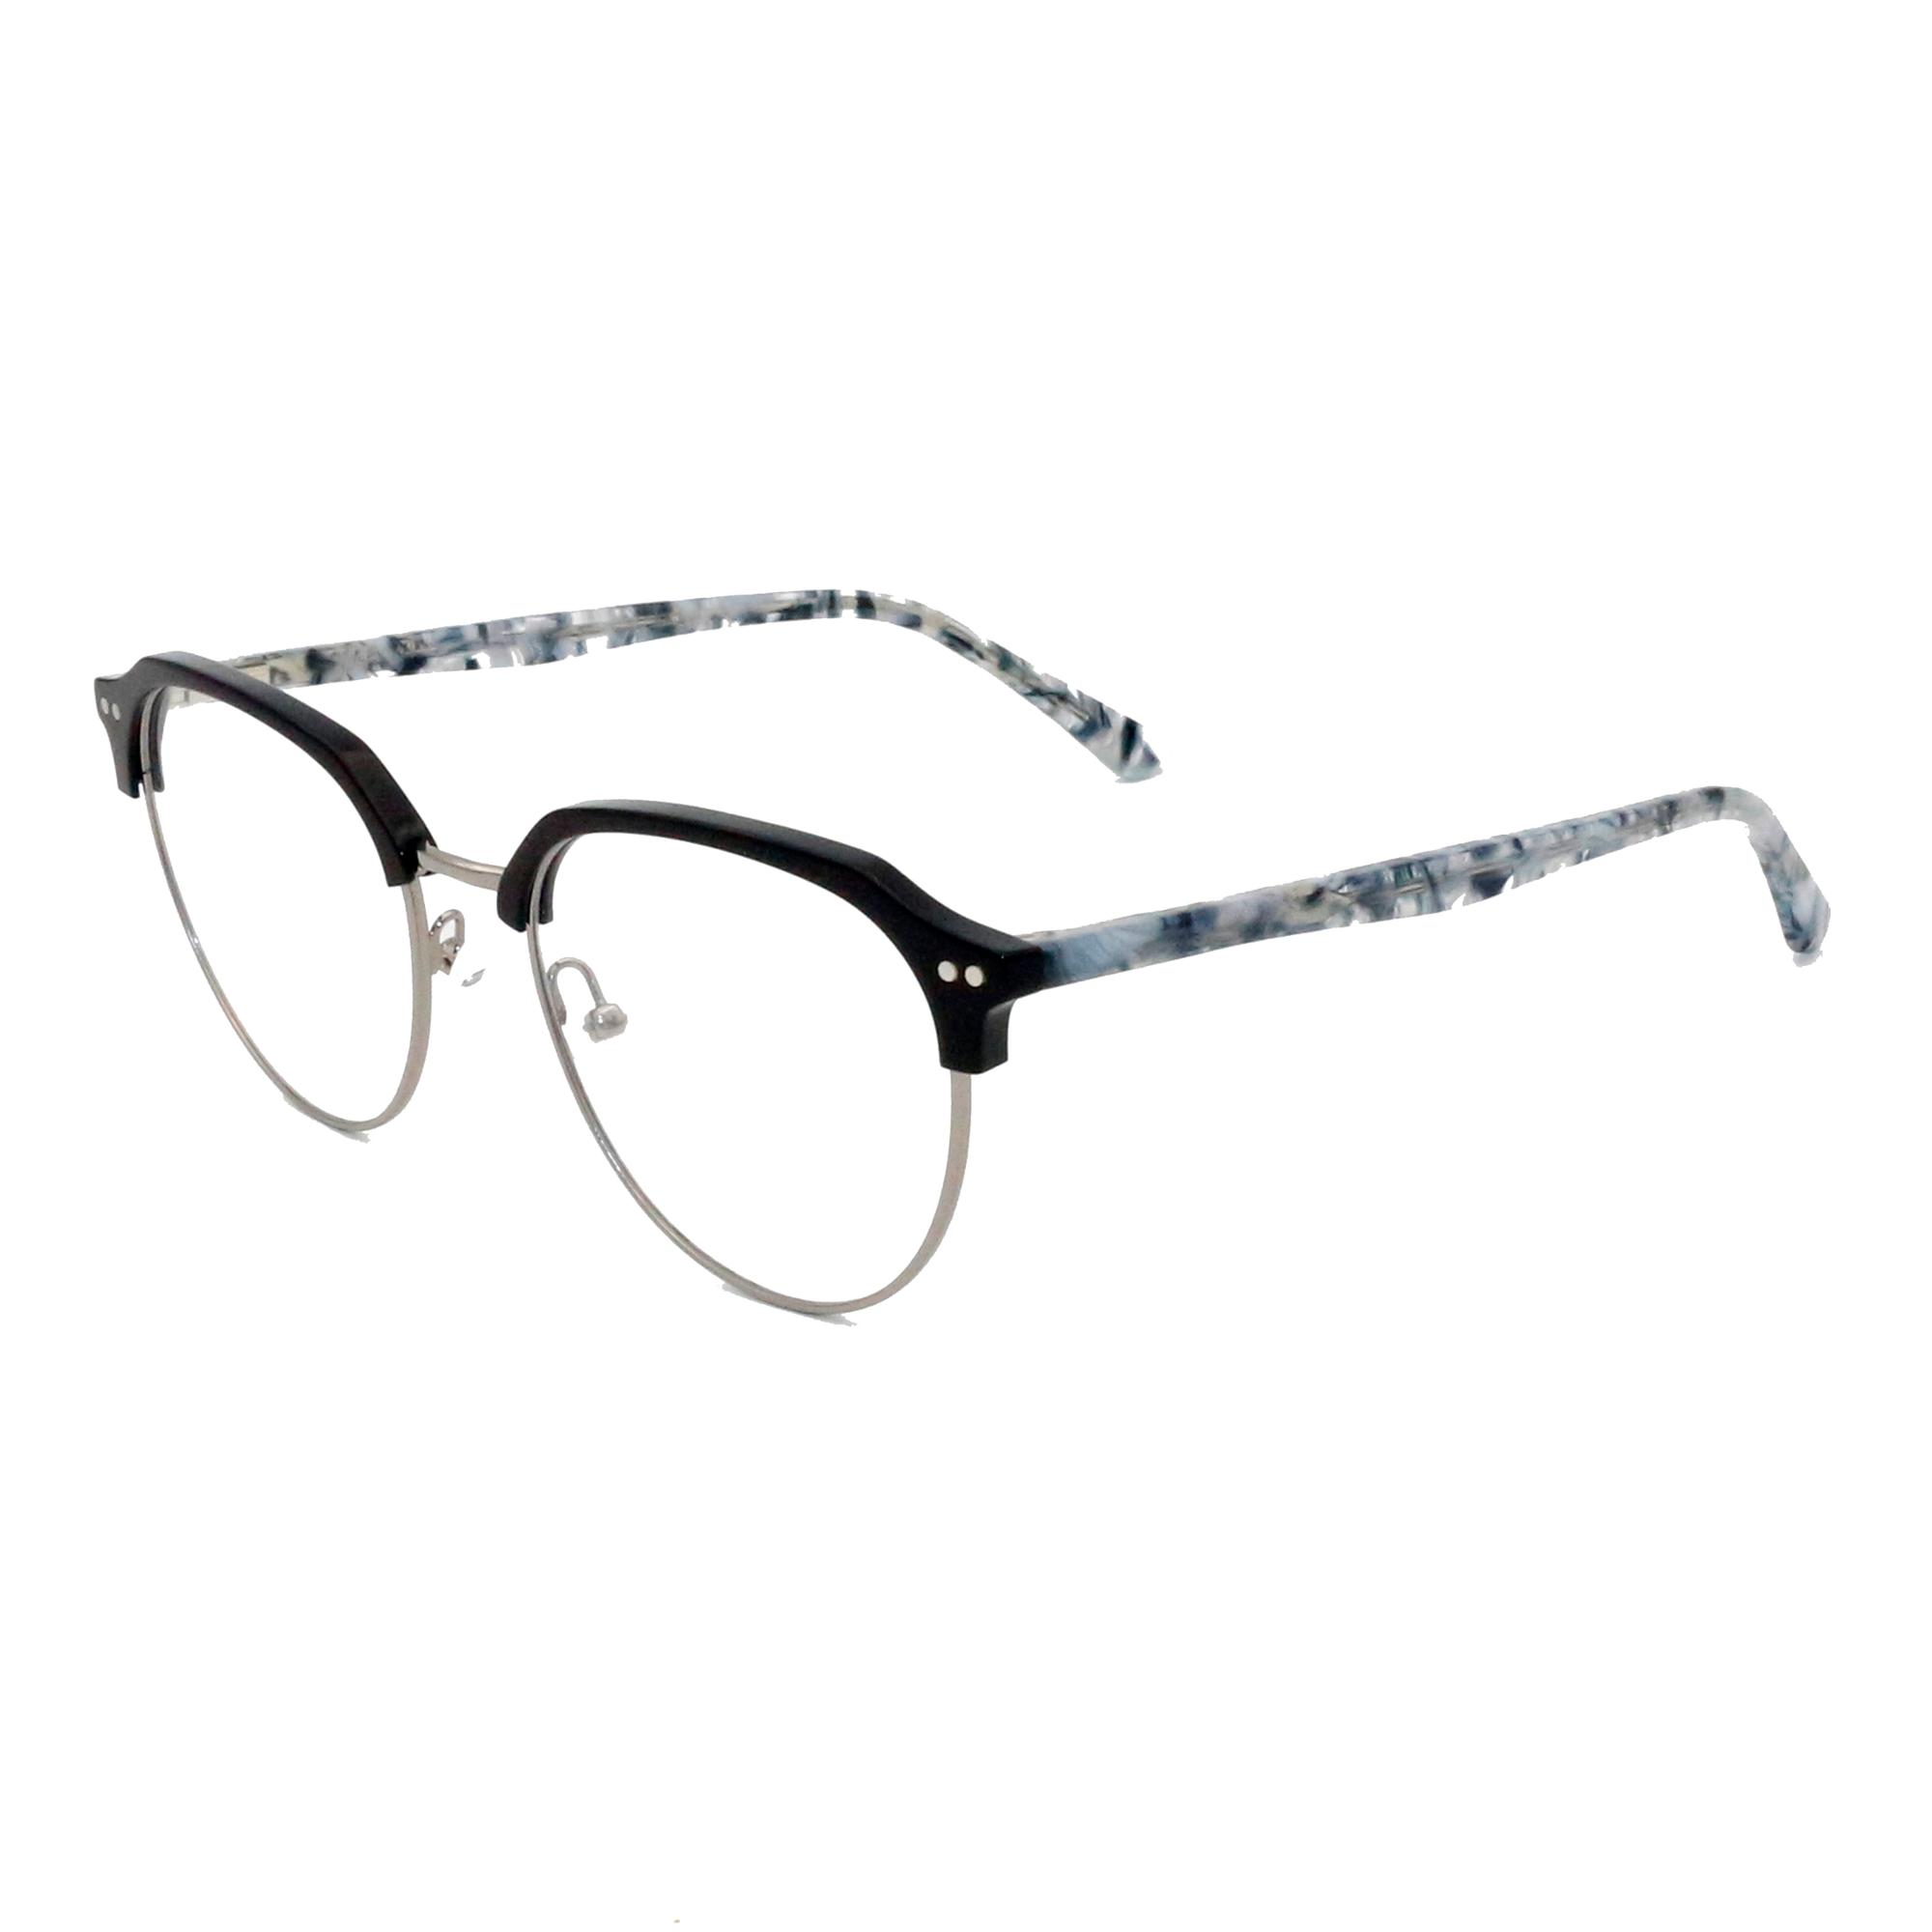 Acetate Material Eyeglasses Frames 2018 Fashion Retro